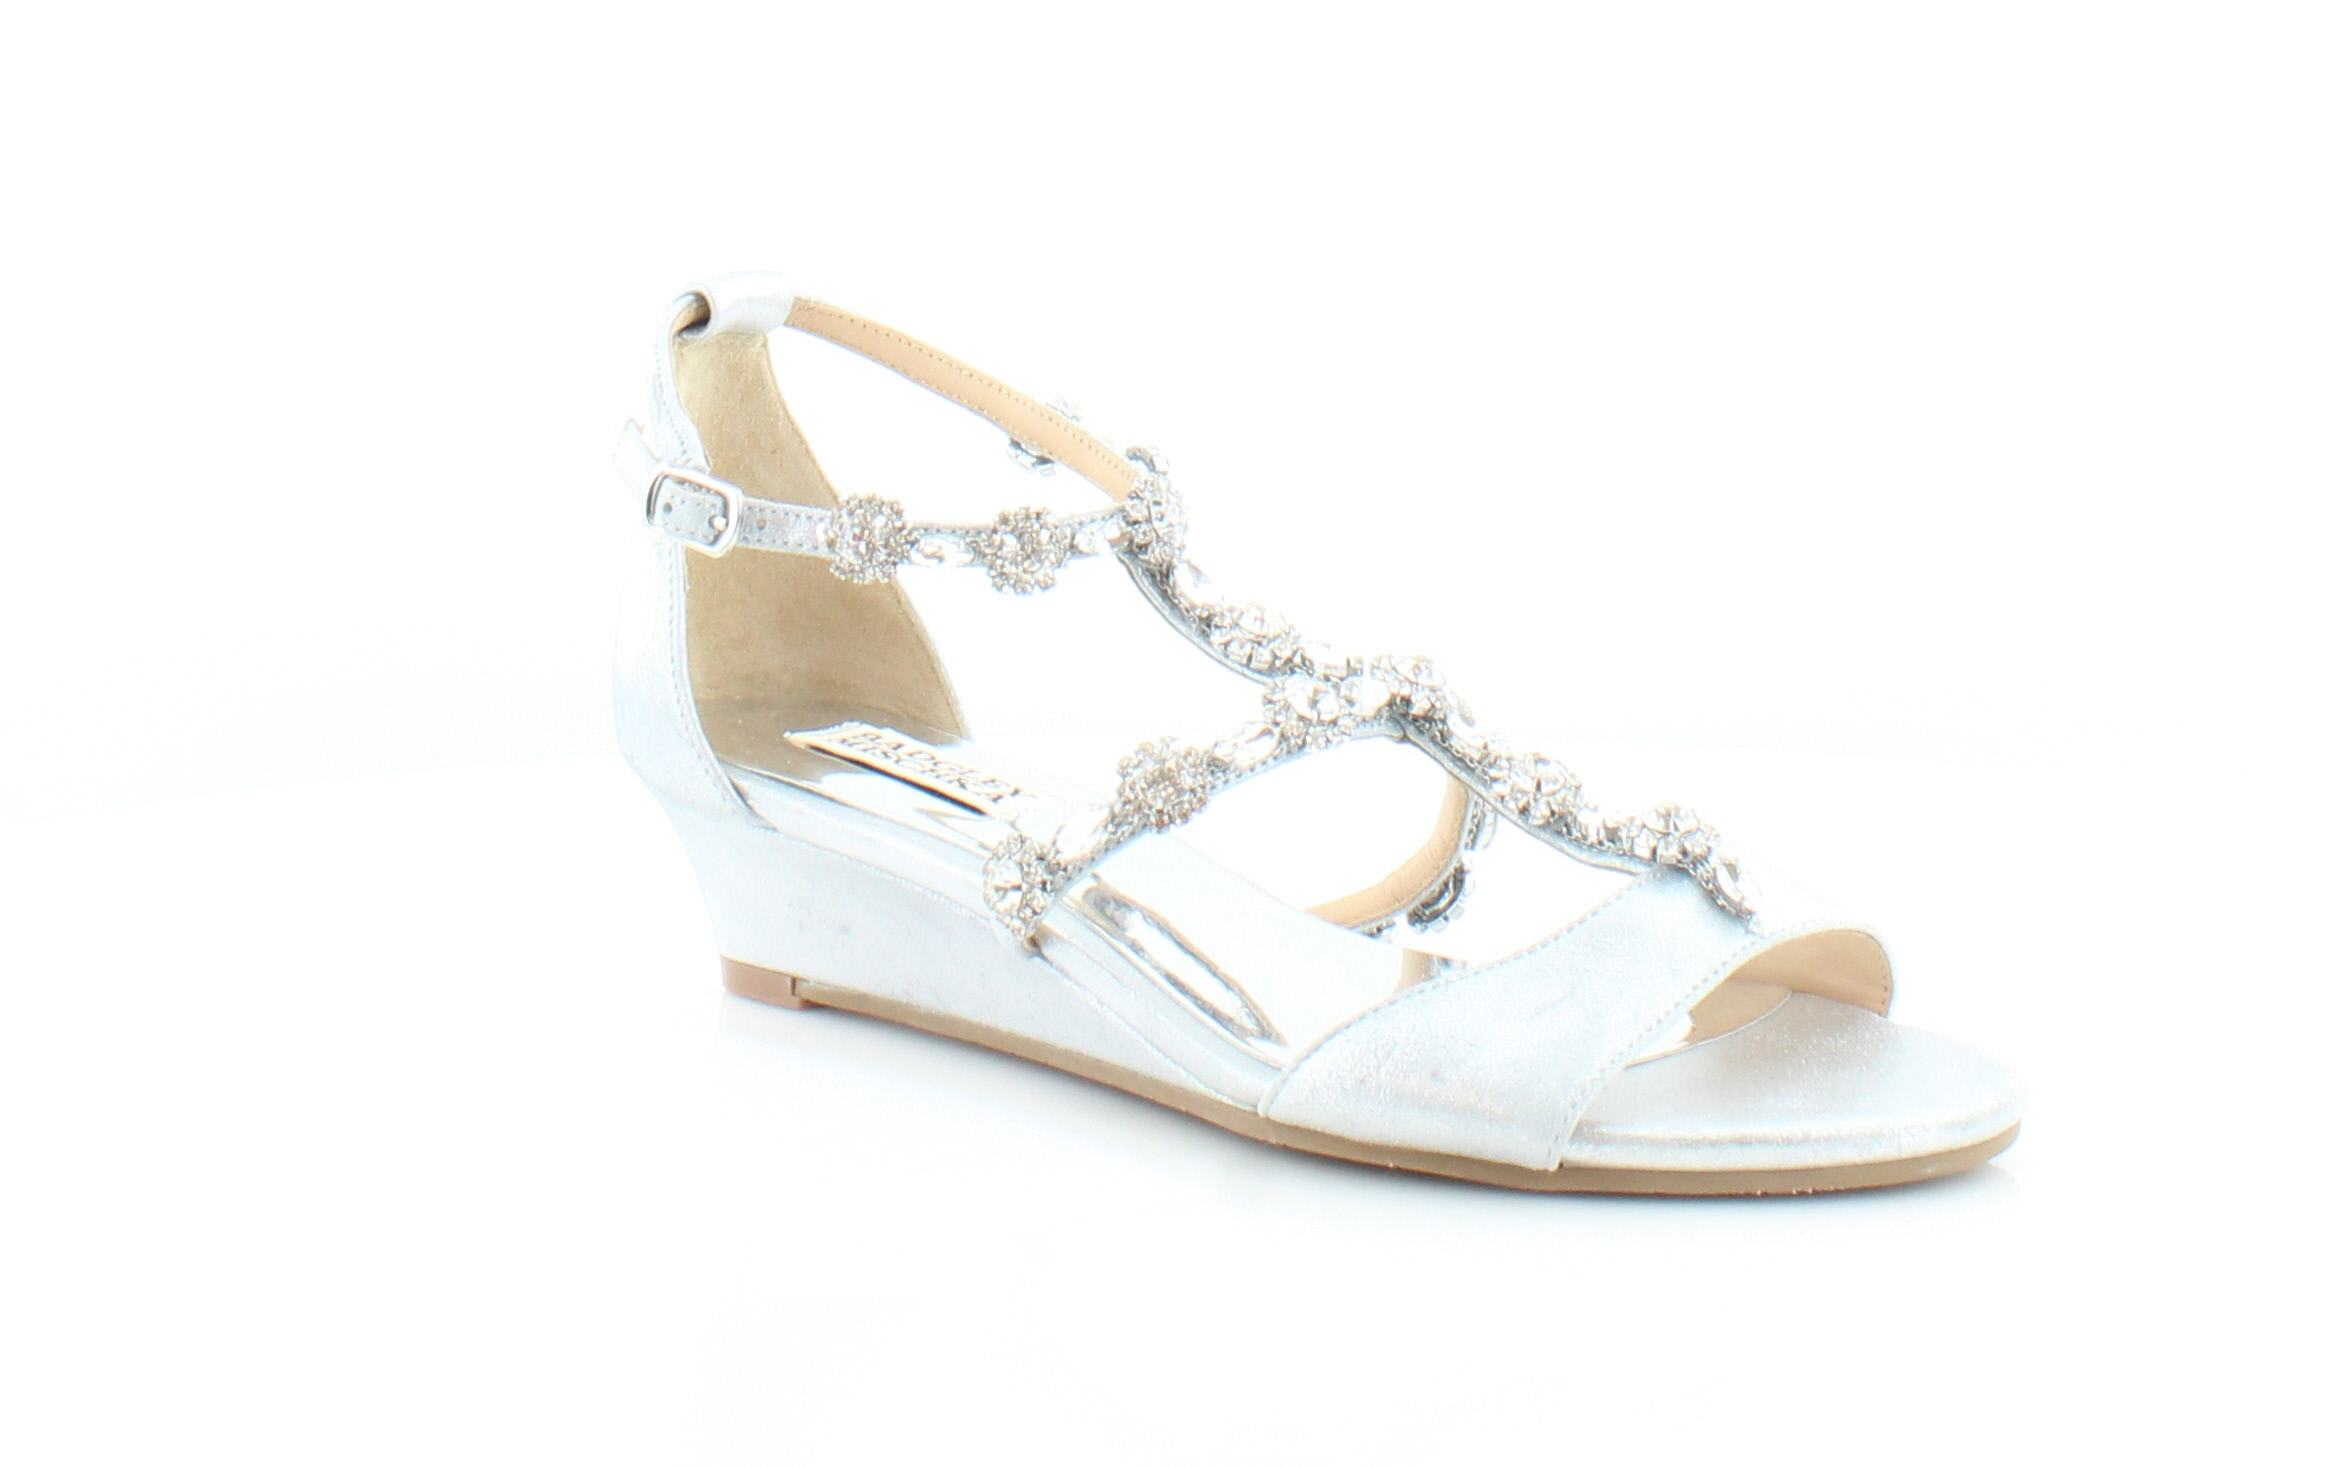 9fec5f224ddf Badgley Mischka Terry II Silver Womens Shoes Size 7 M Sandals MSRP ...